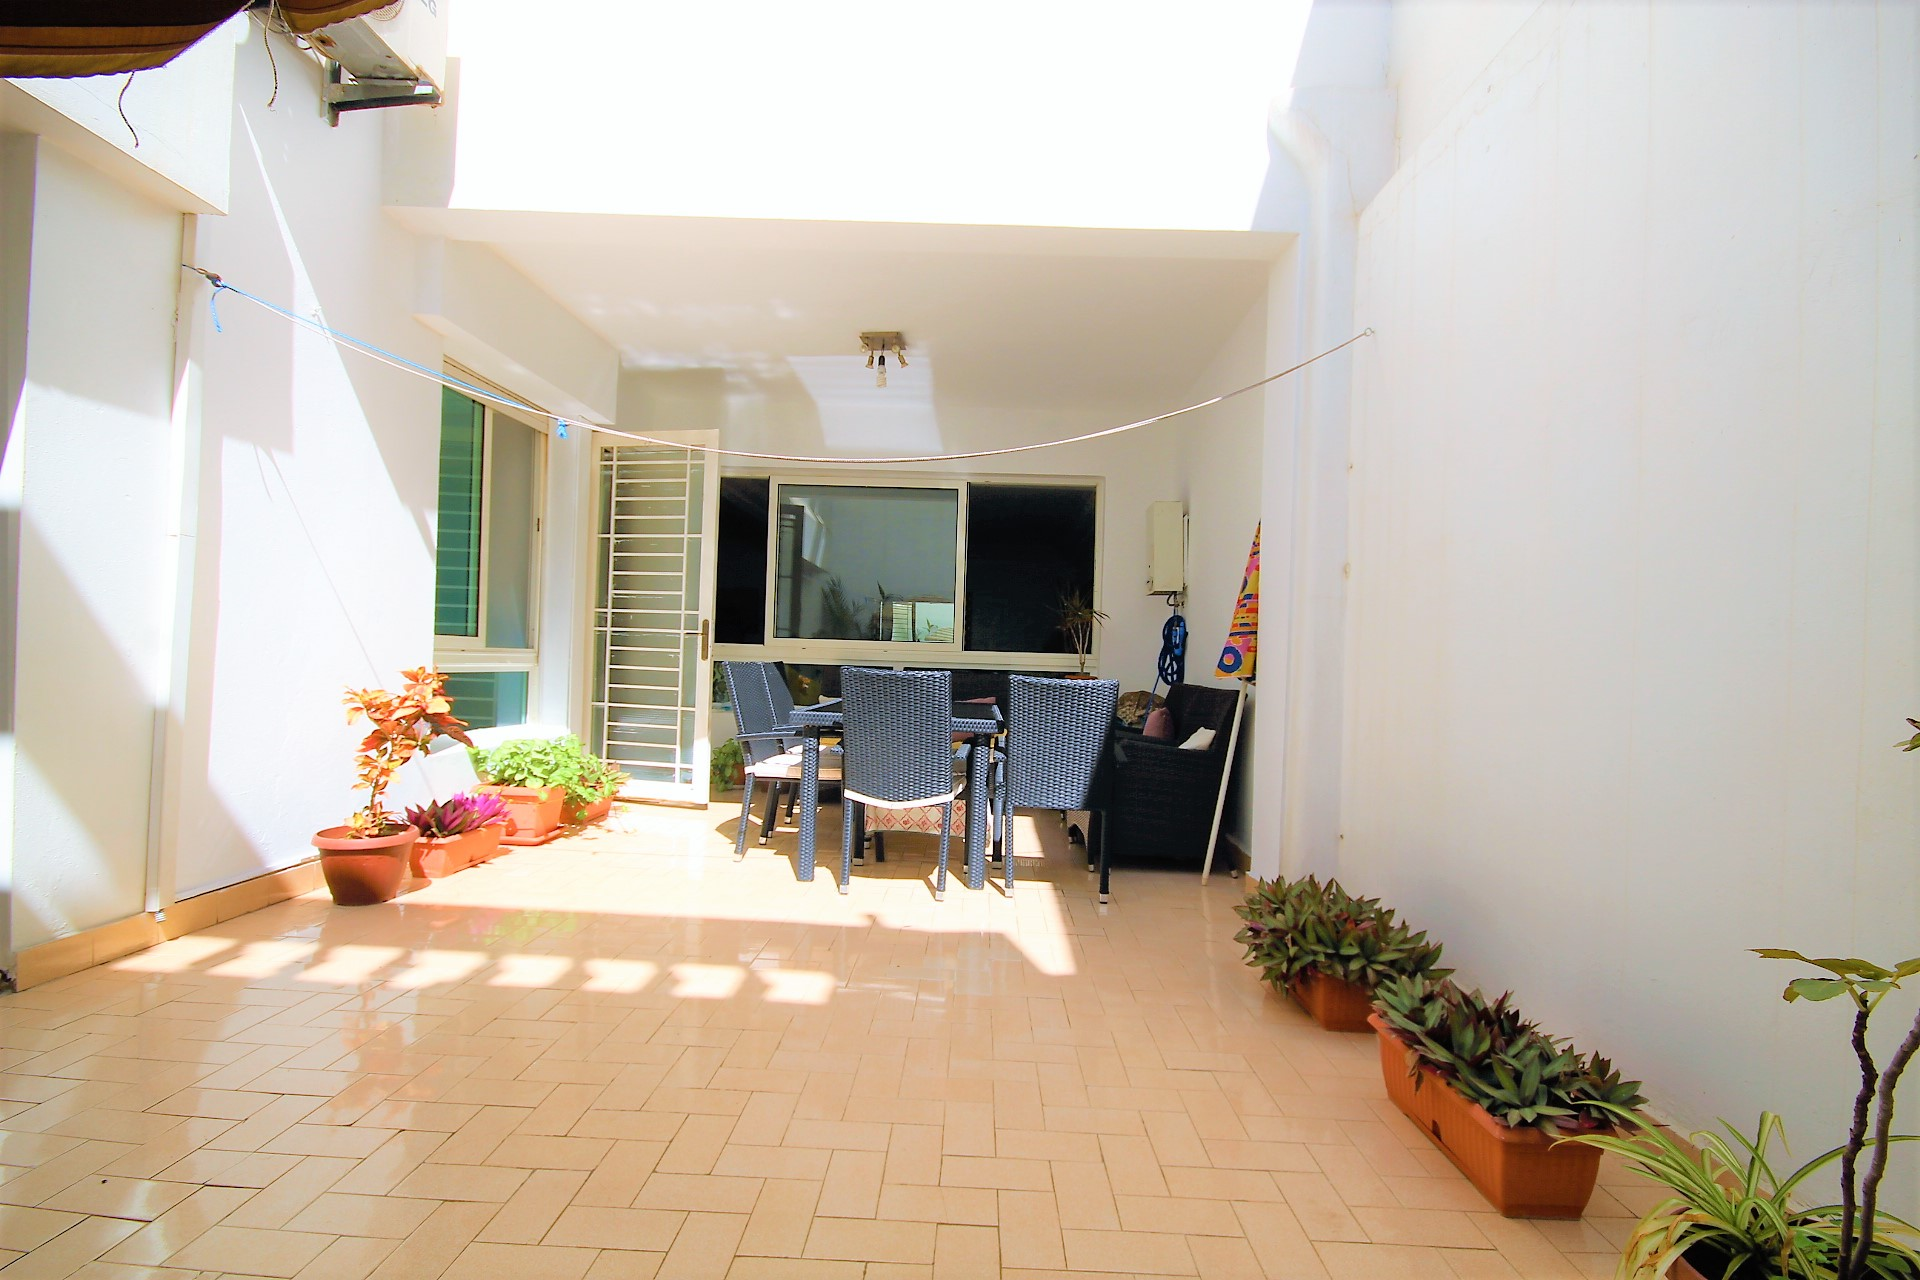 Casablanca, Maarif Fourate, vend appartement à usage mixte de 157 m² avec terrasse